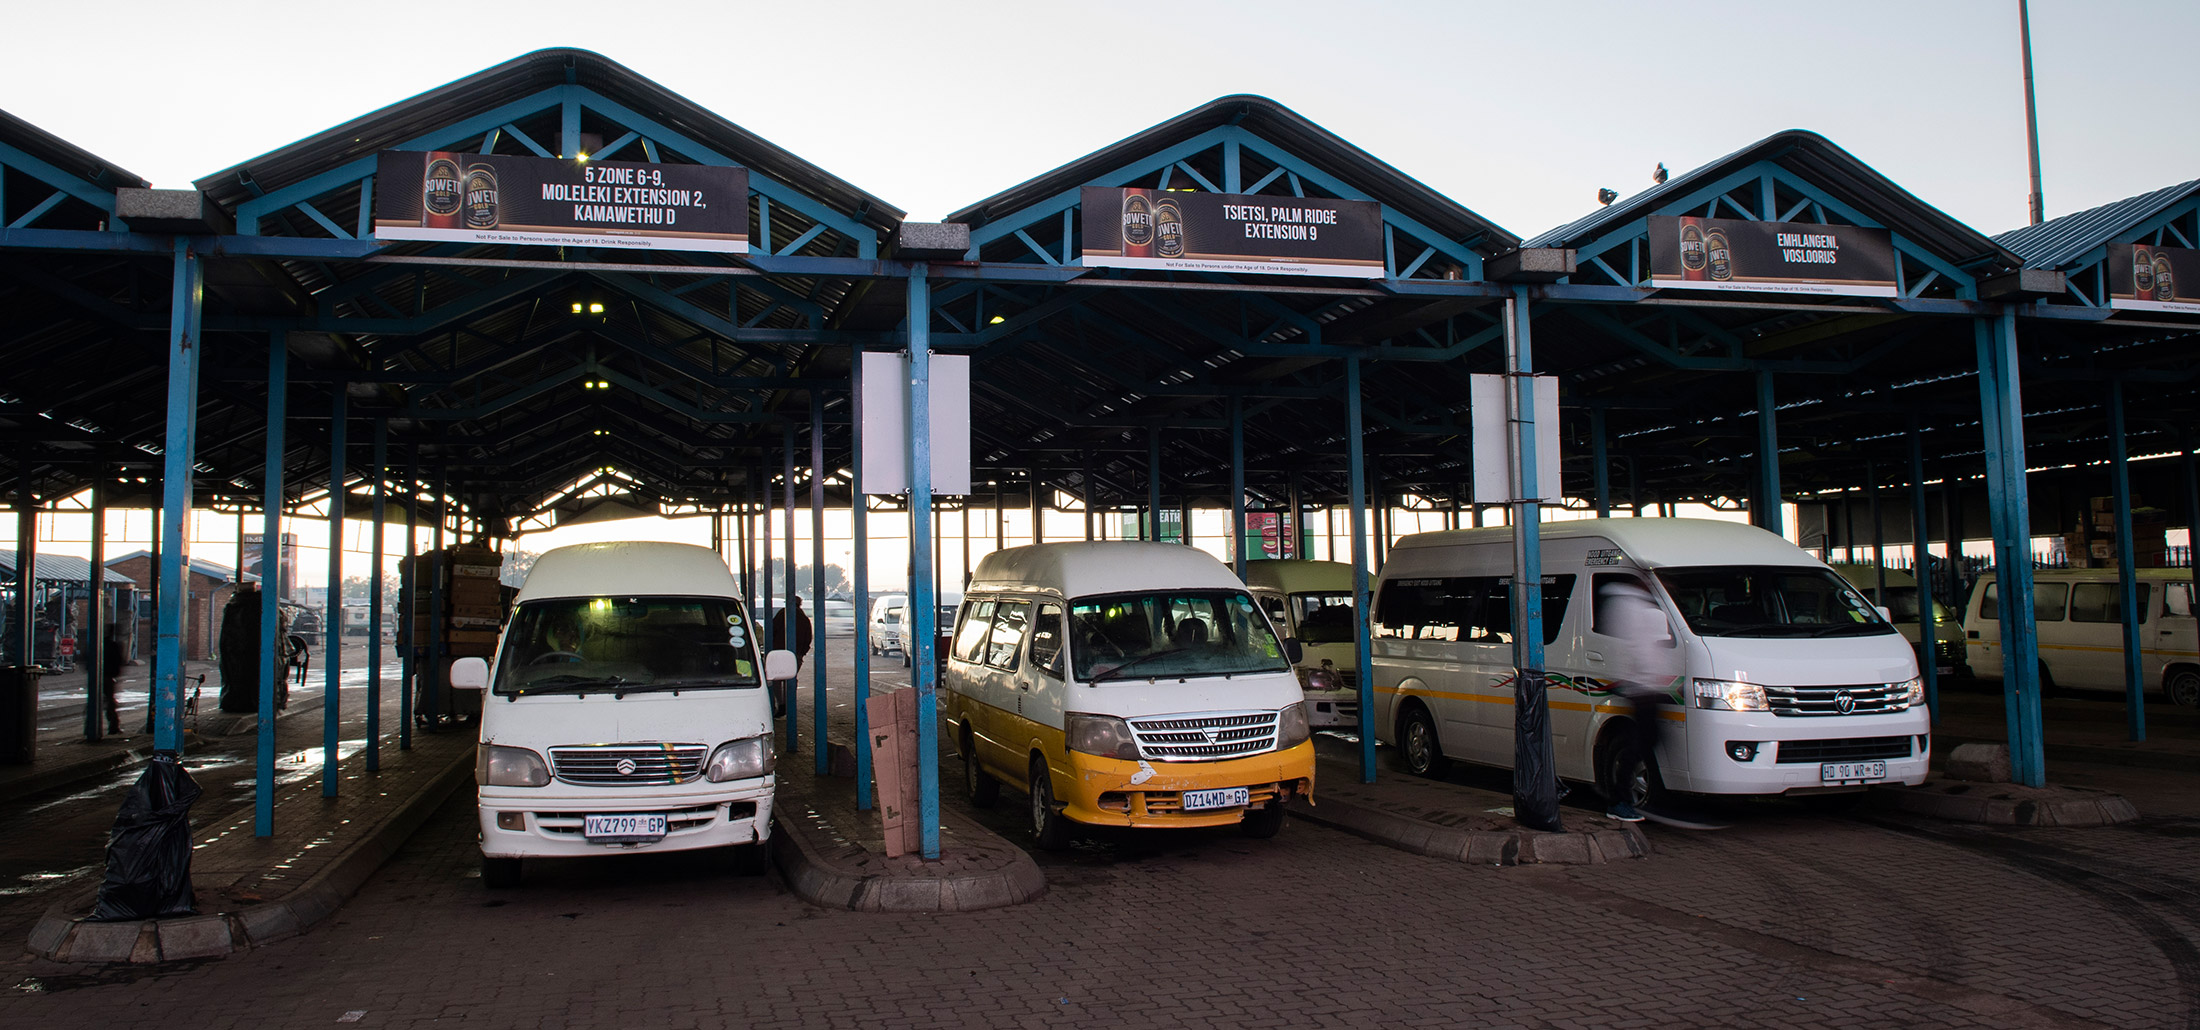 Taxi Rank Image 5